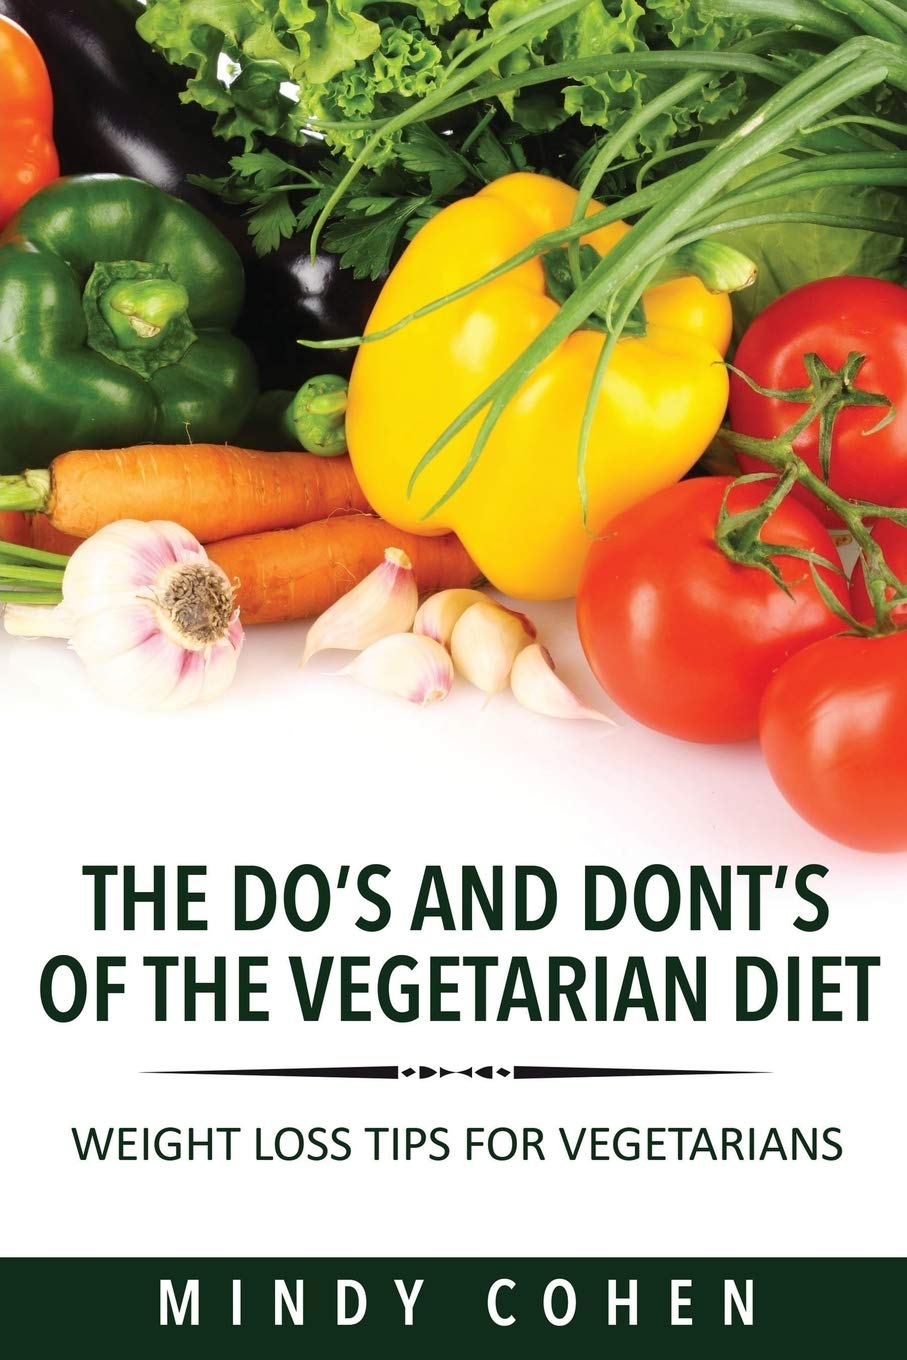 dos and donts of vegan diet